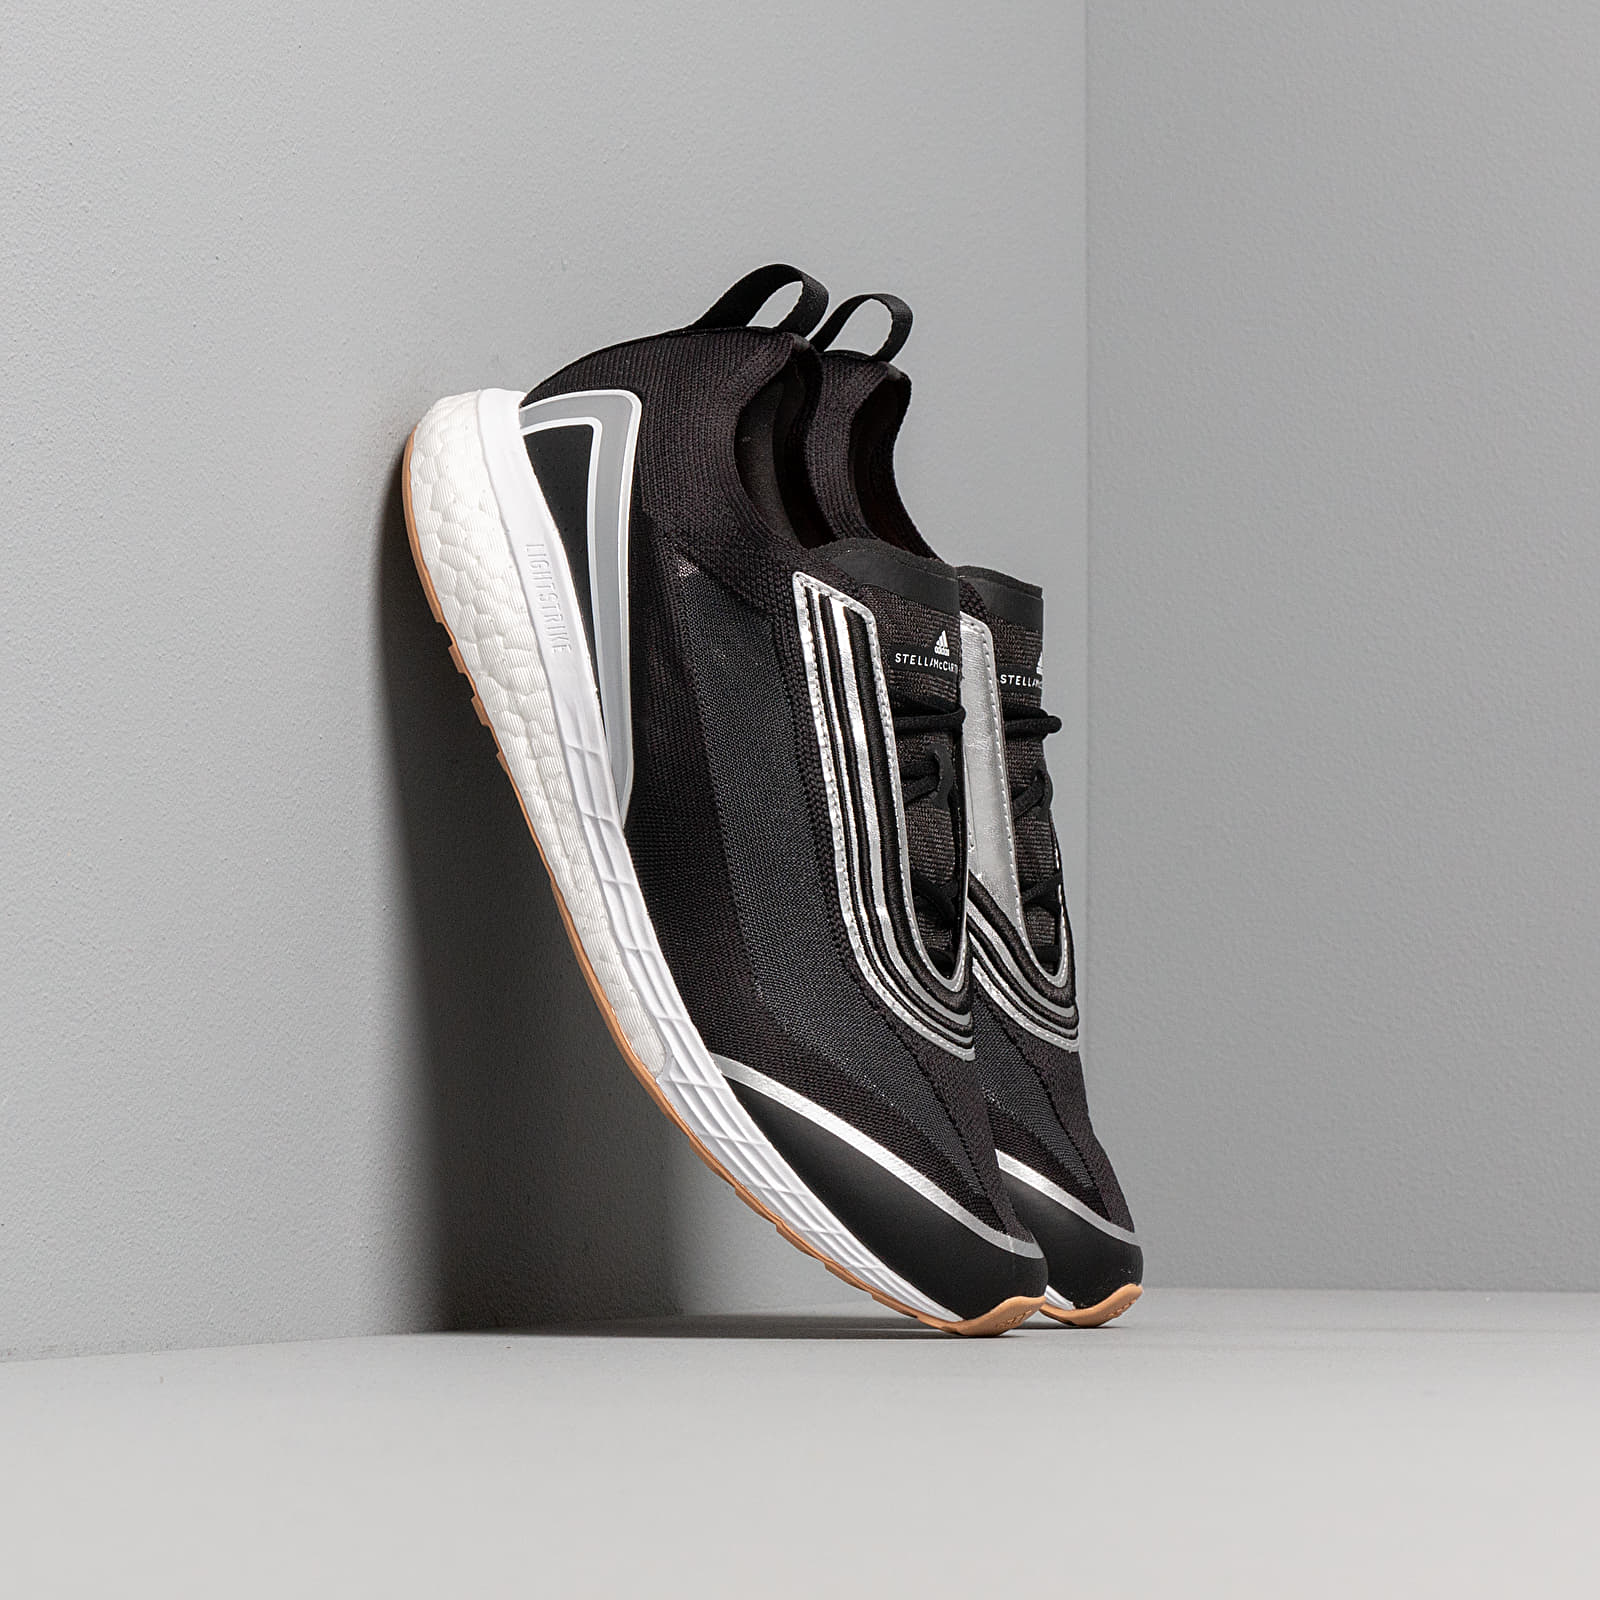 adidas x Stella McCartney Boston